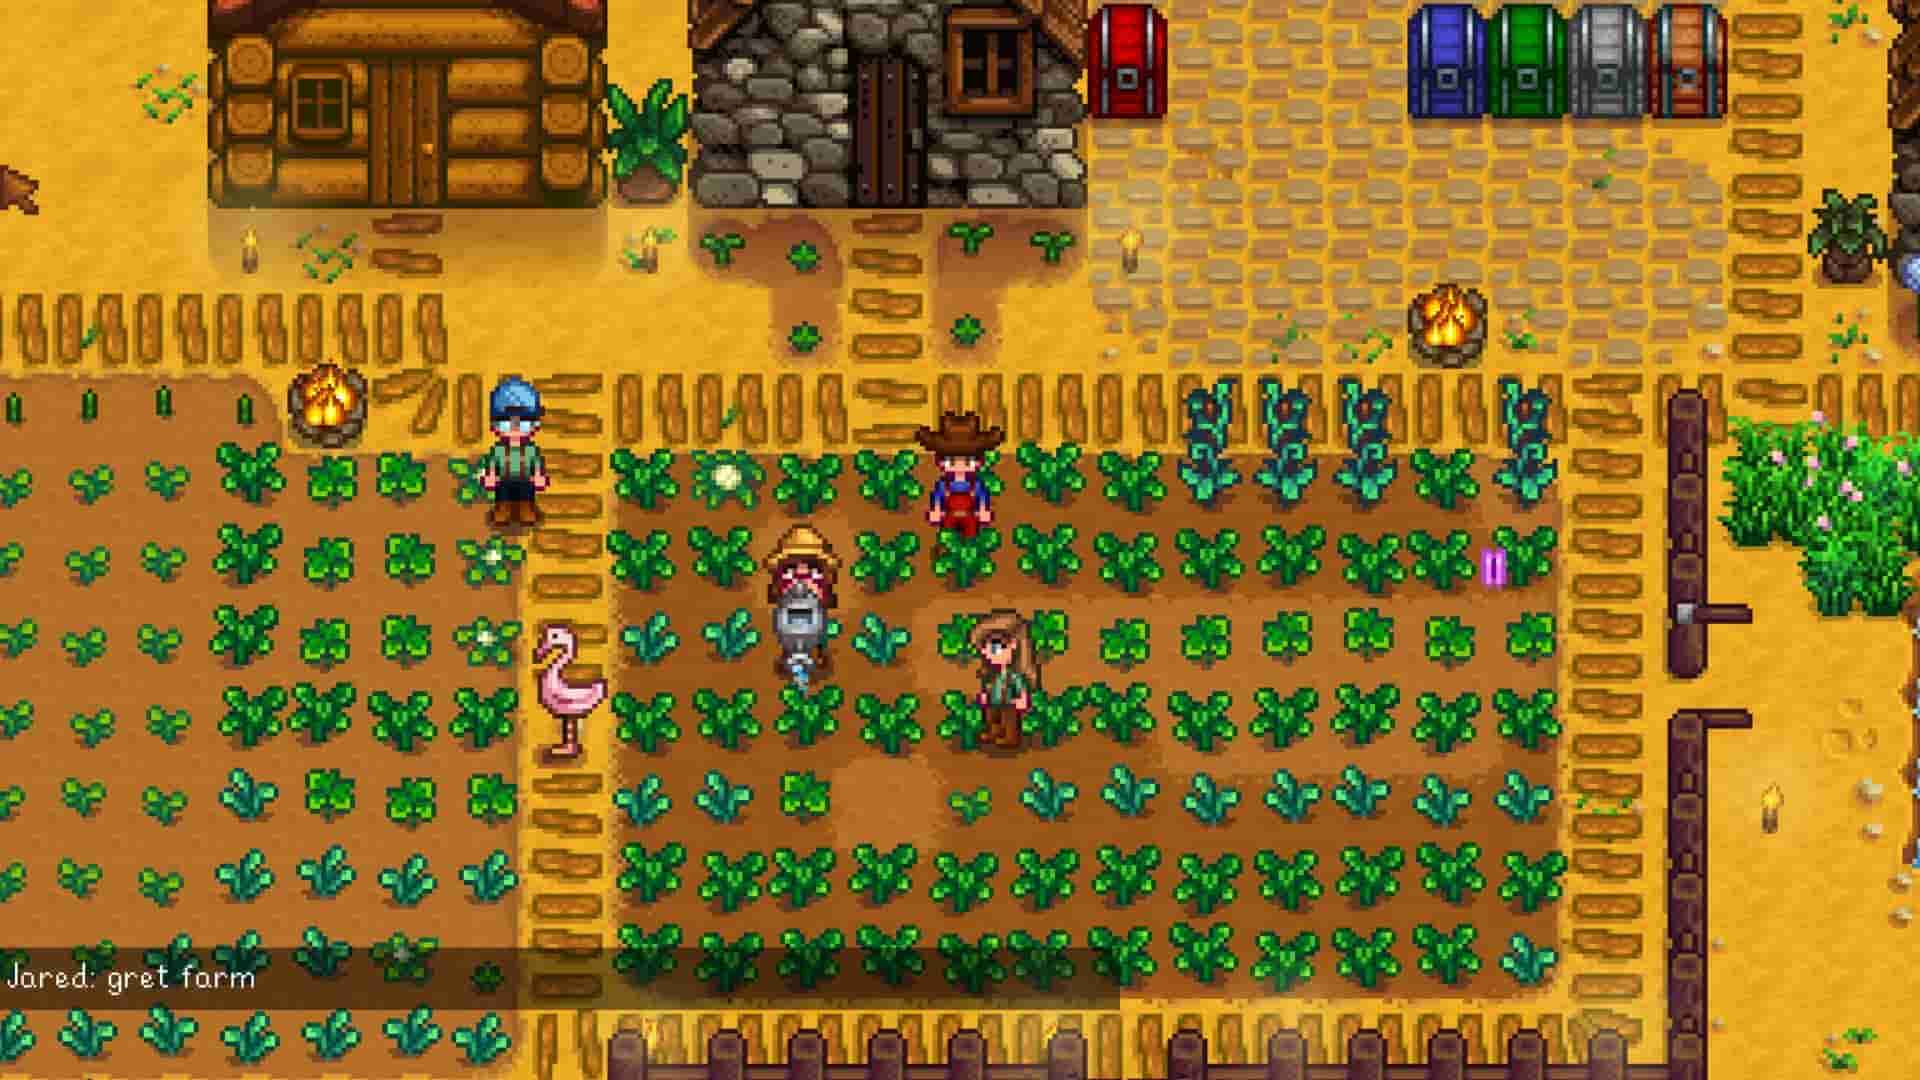 Stardew Valley Multiplayer Gameplay Gets Showcased in 1-Hour Video